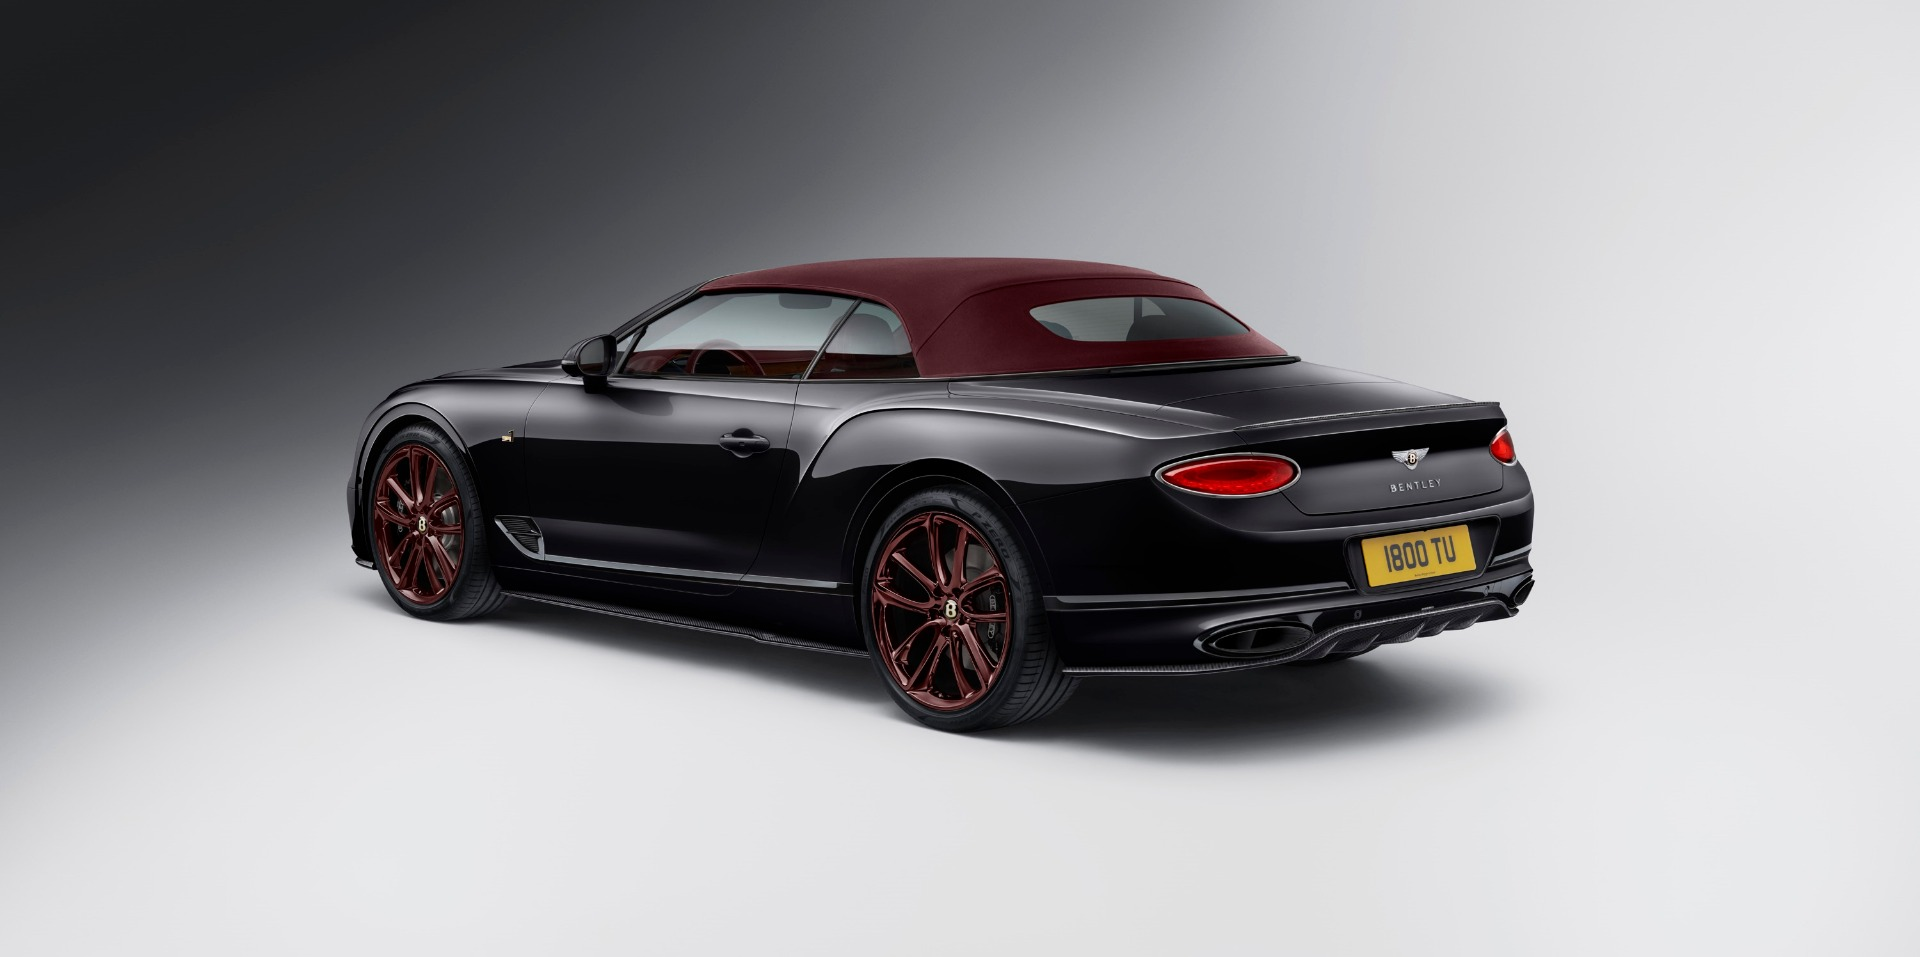 New 2020 Bentley Continental GTC W12 Number 1 Edition by Mulliner For Sale In Greenwich, CT 3467_p2